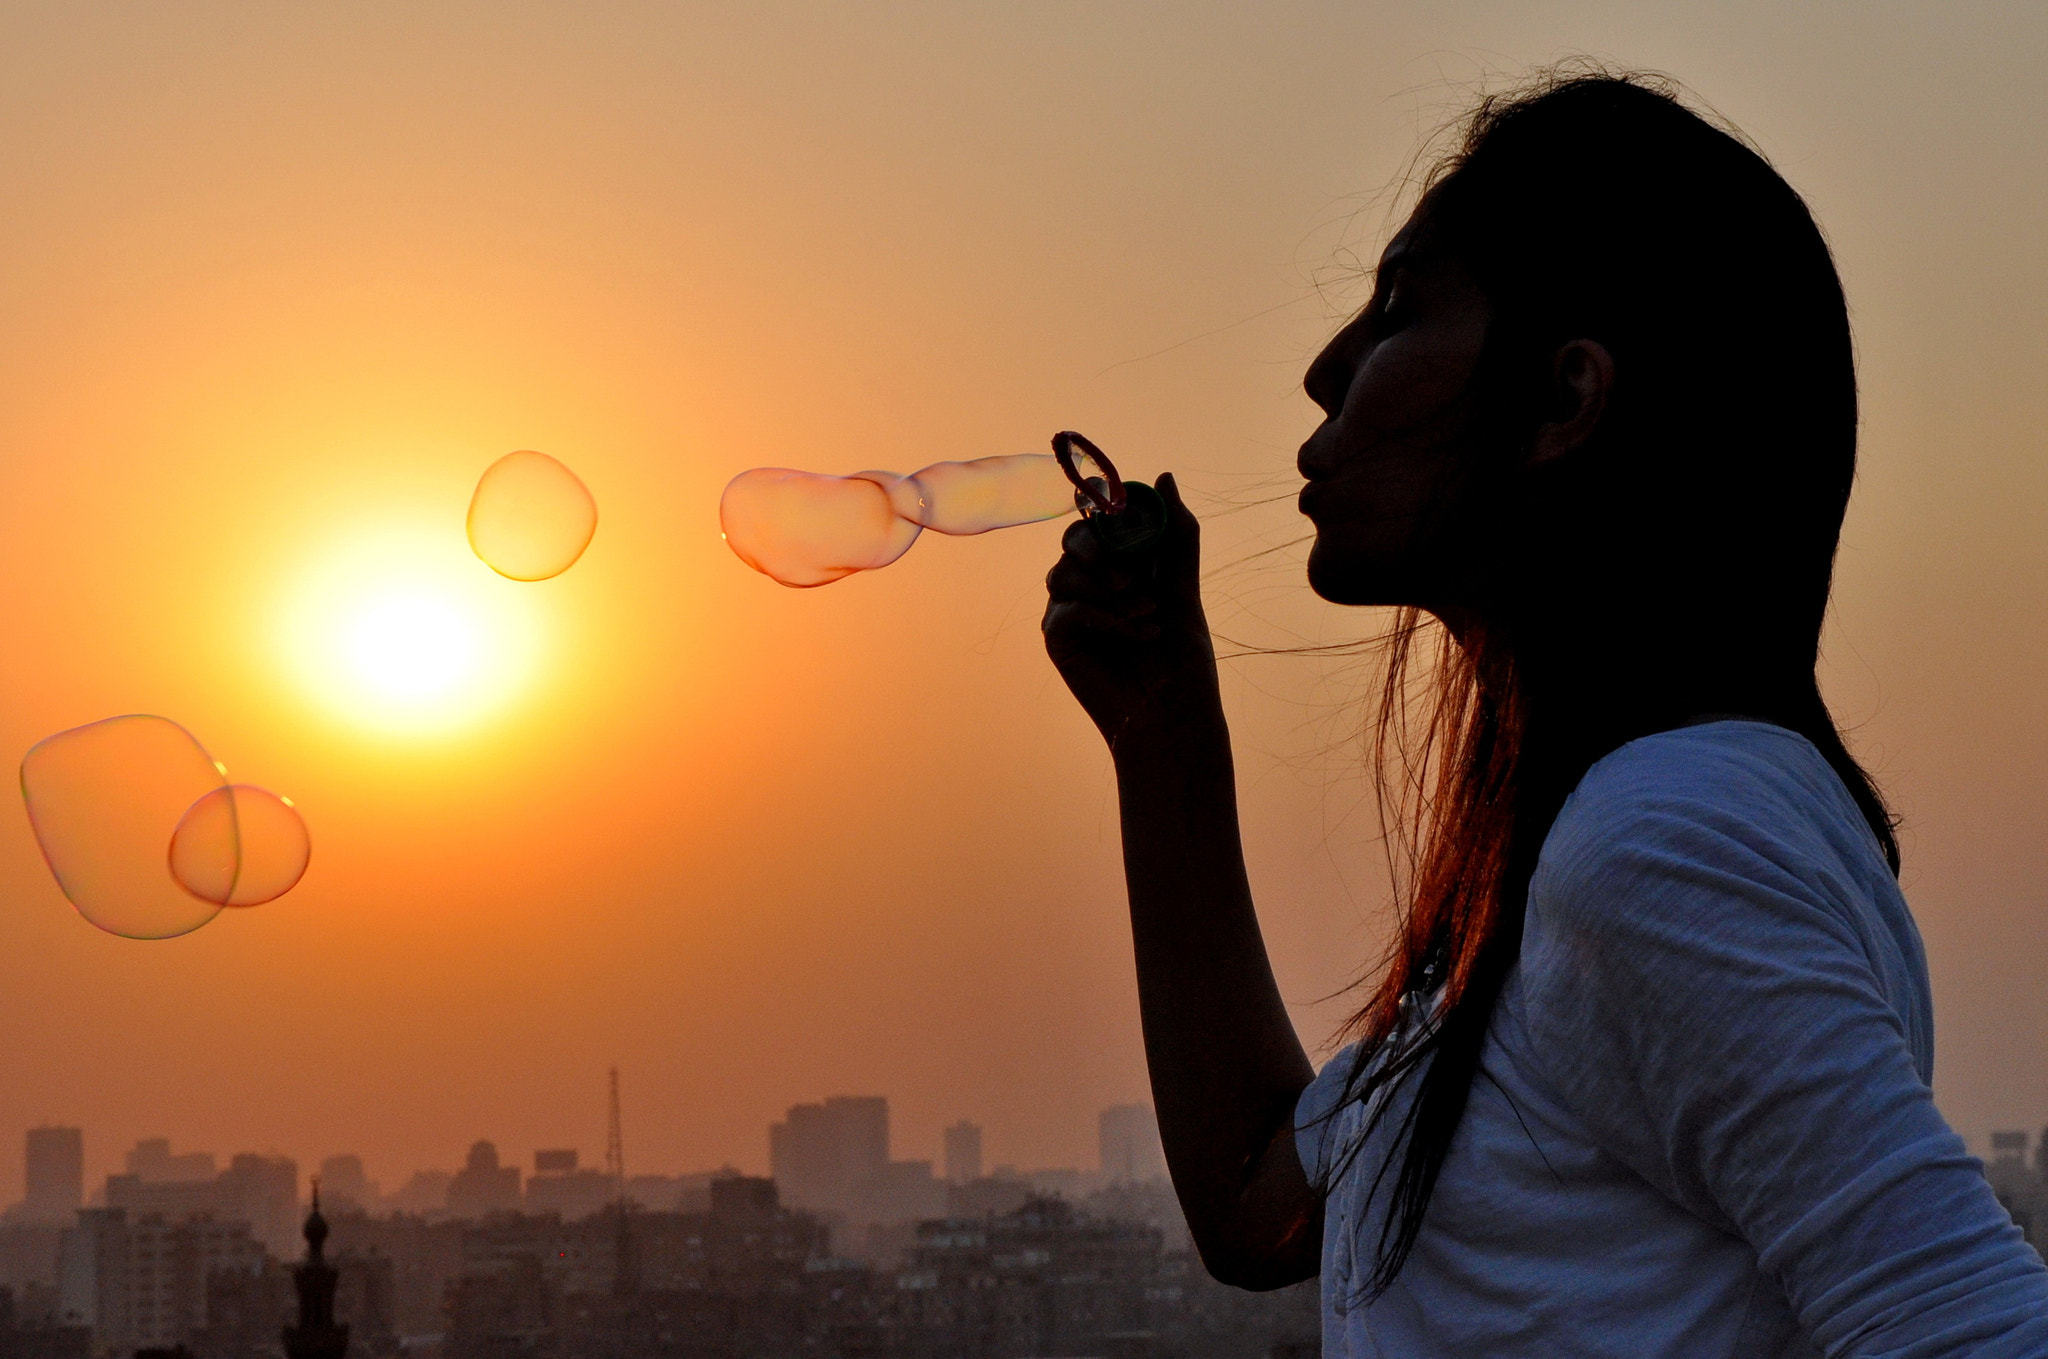 Photograph Sun Bubbles by Ahmed Yaqub on 500px